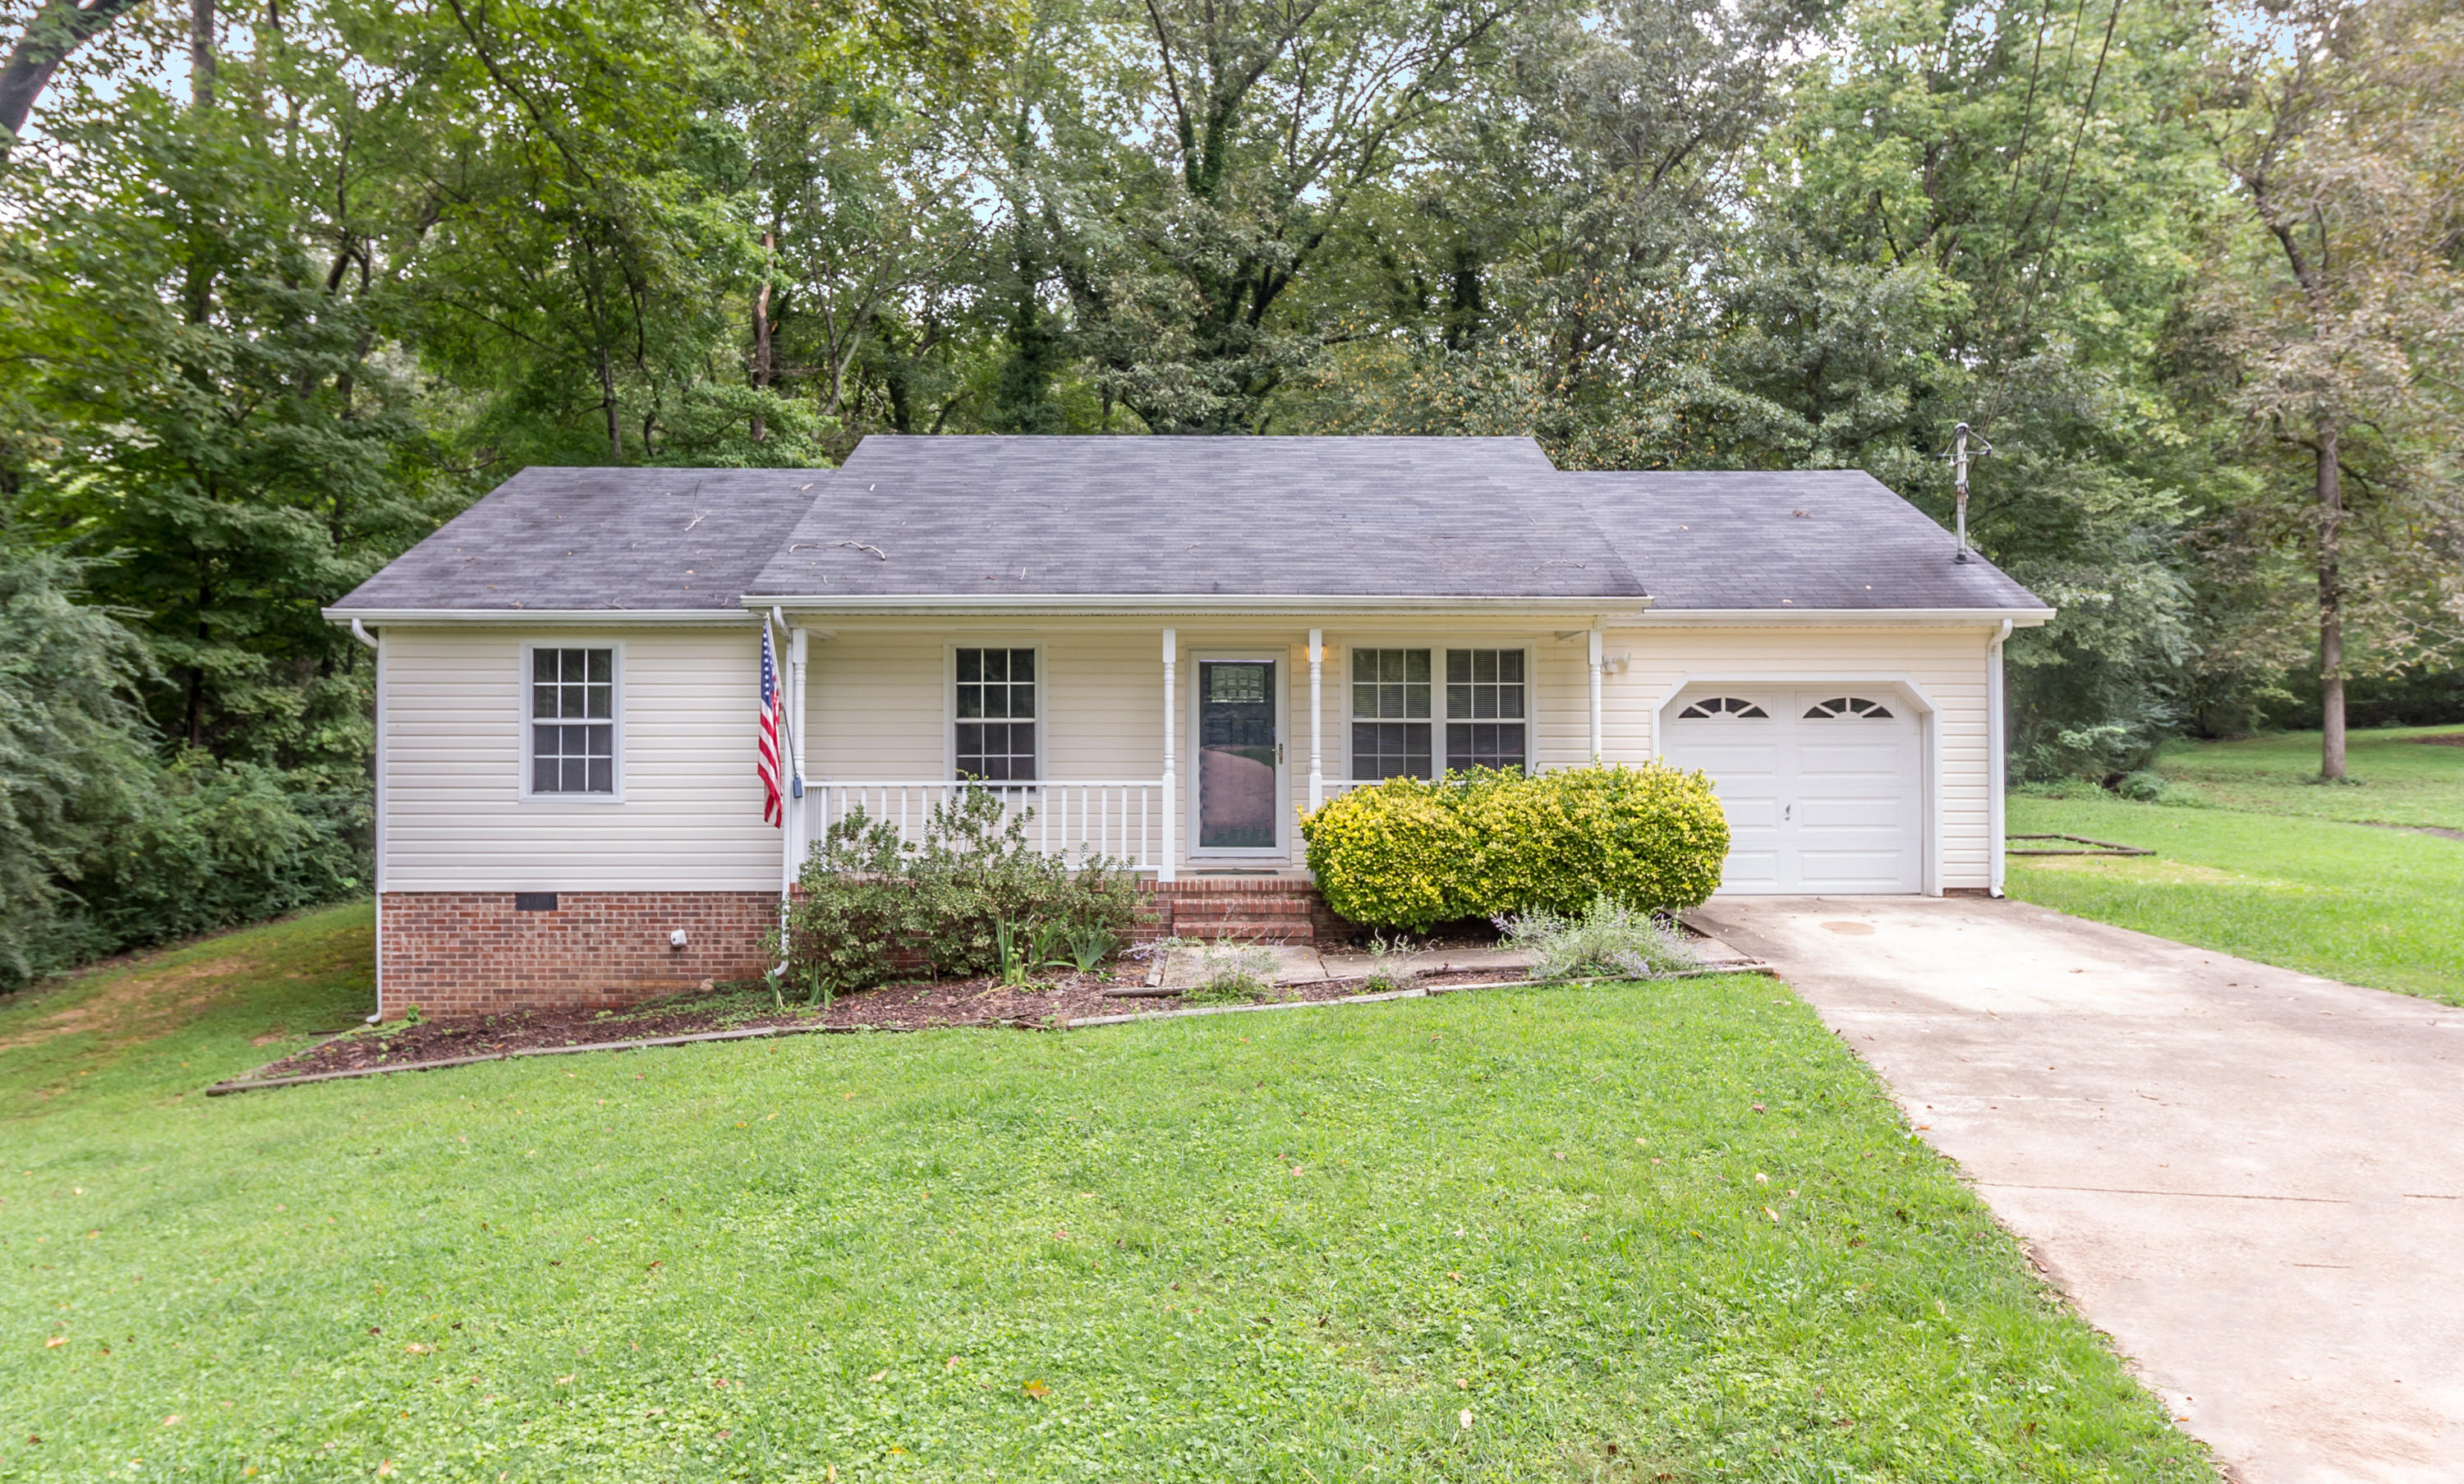 5768 N Morgan Ln, Chattanooga, TN 37415